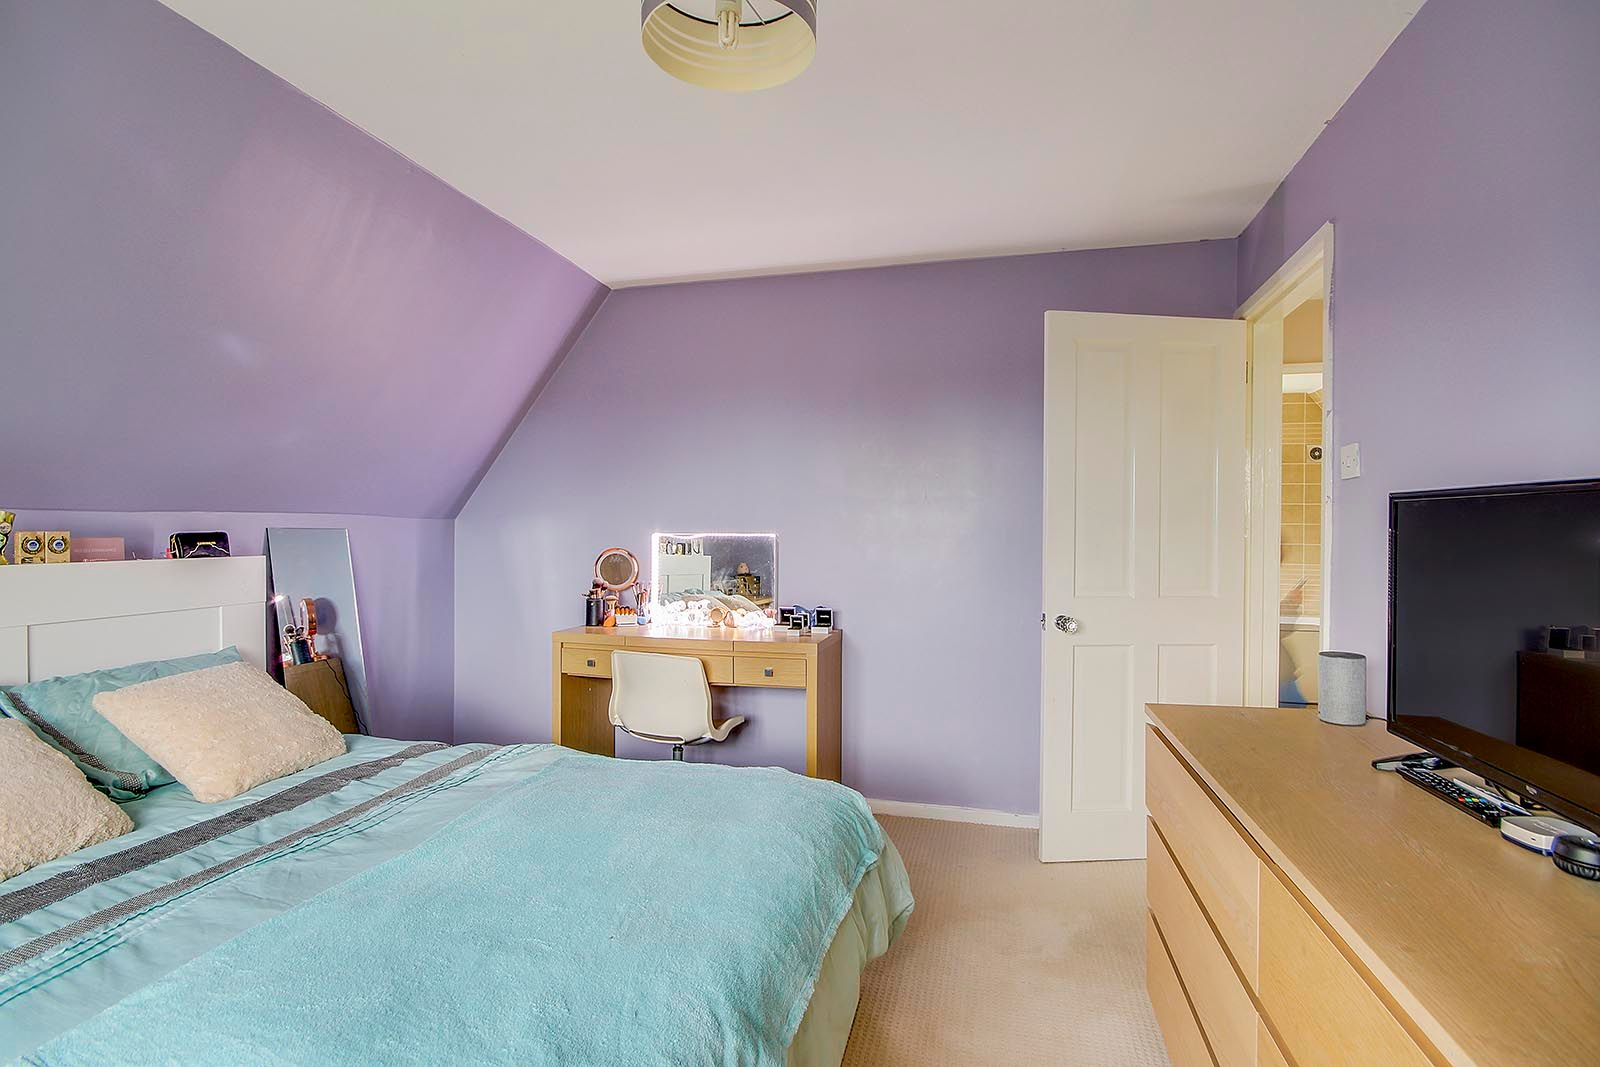 3 bed house for sale in Woodlands Close (COMP AUG 19) 7